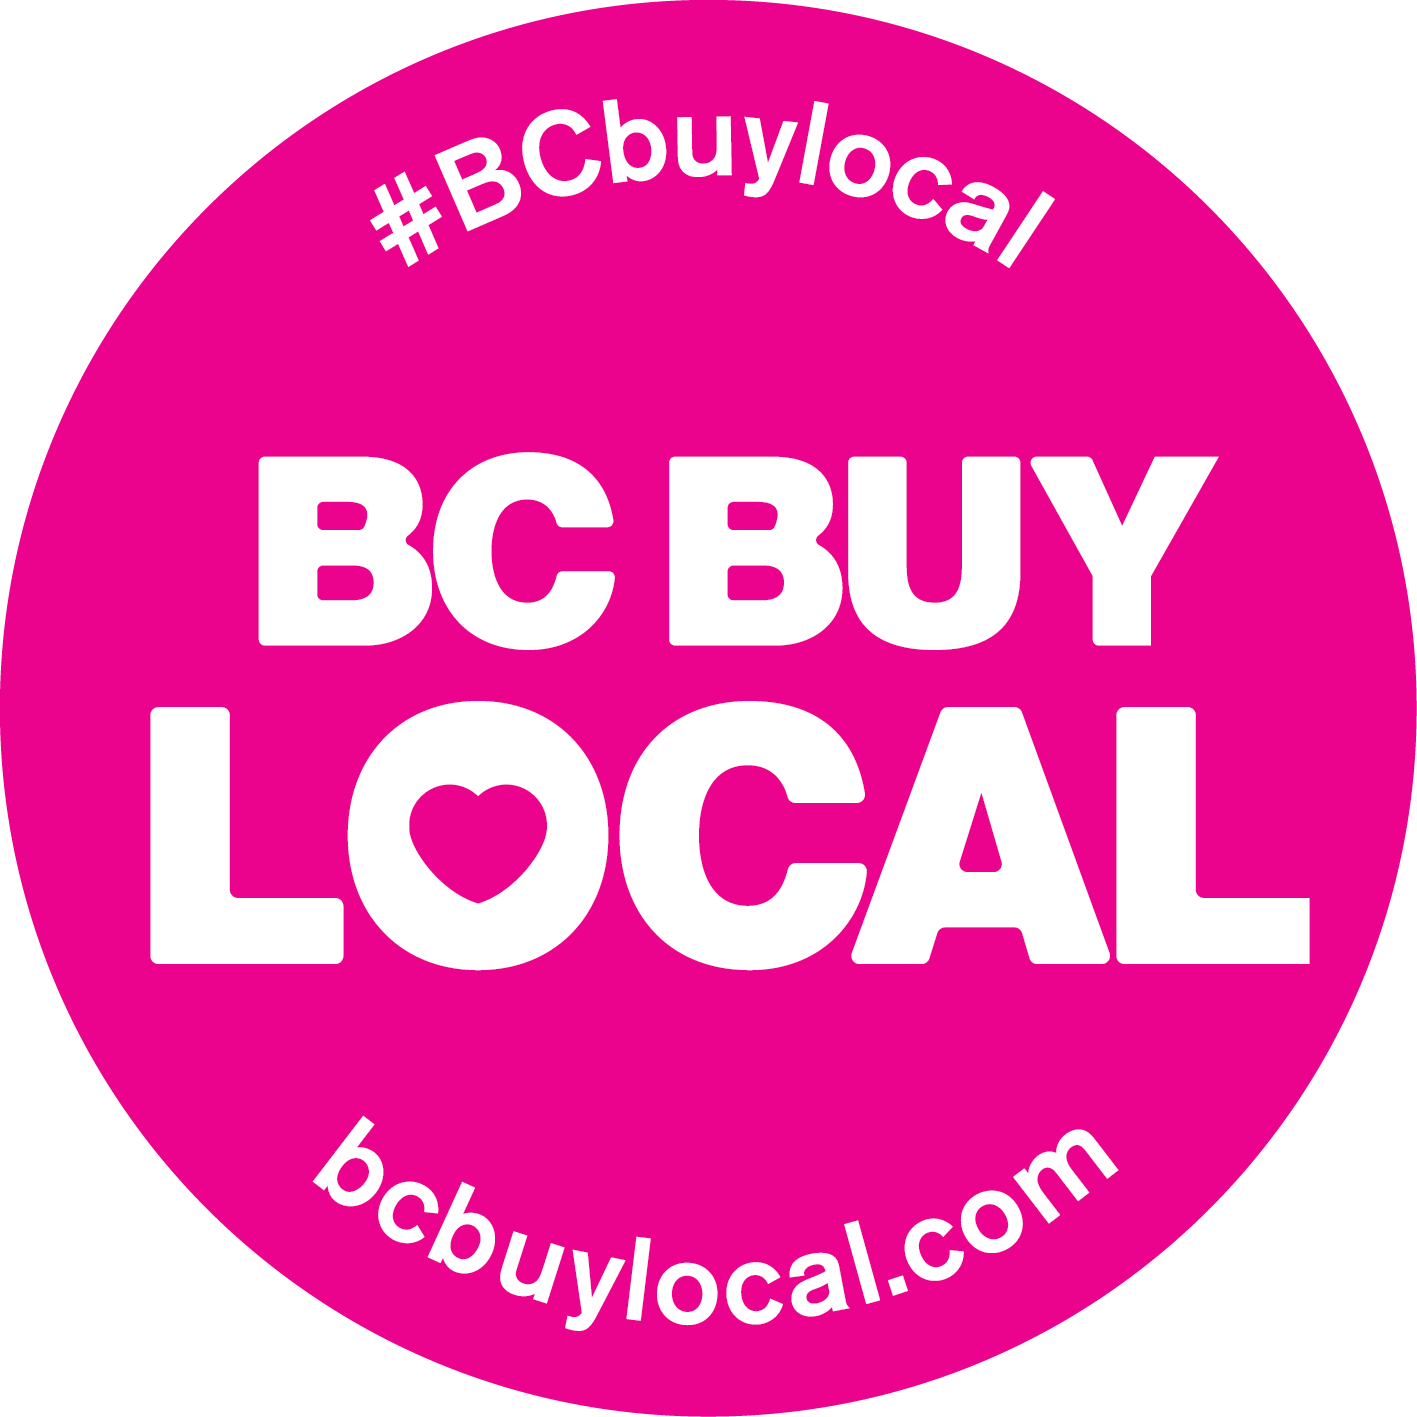 #BCBuyLocal Local Business BC LOCO buy local shop local local business